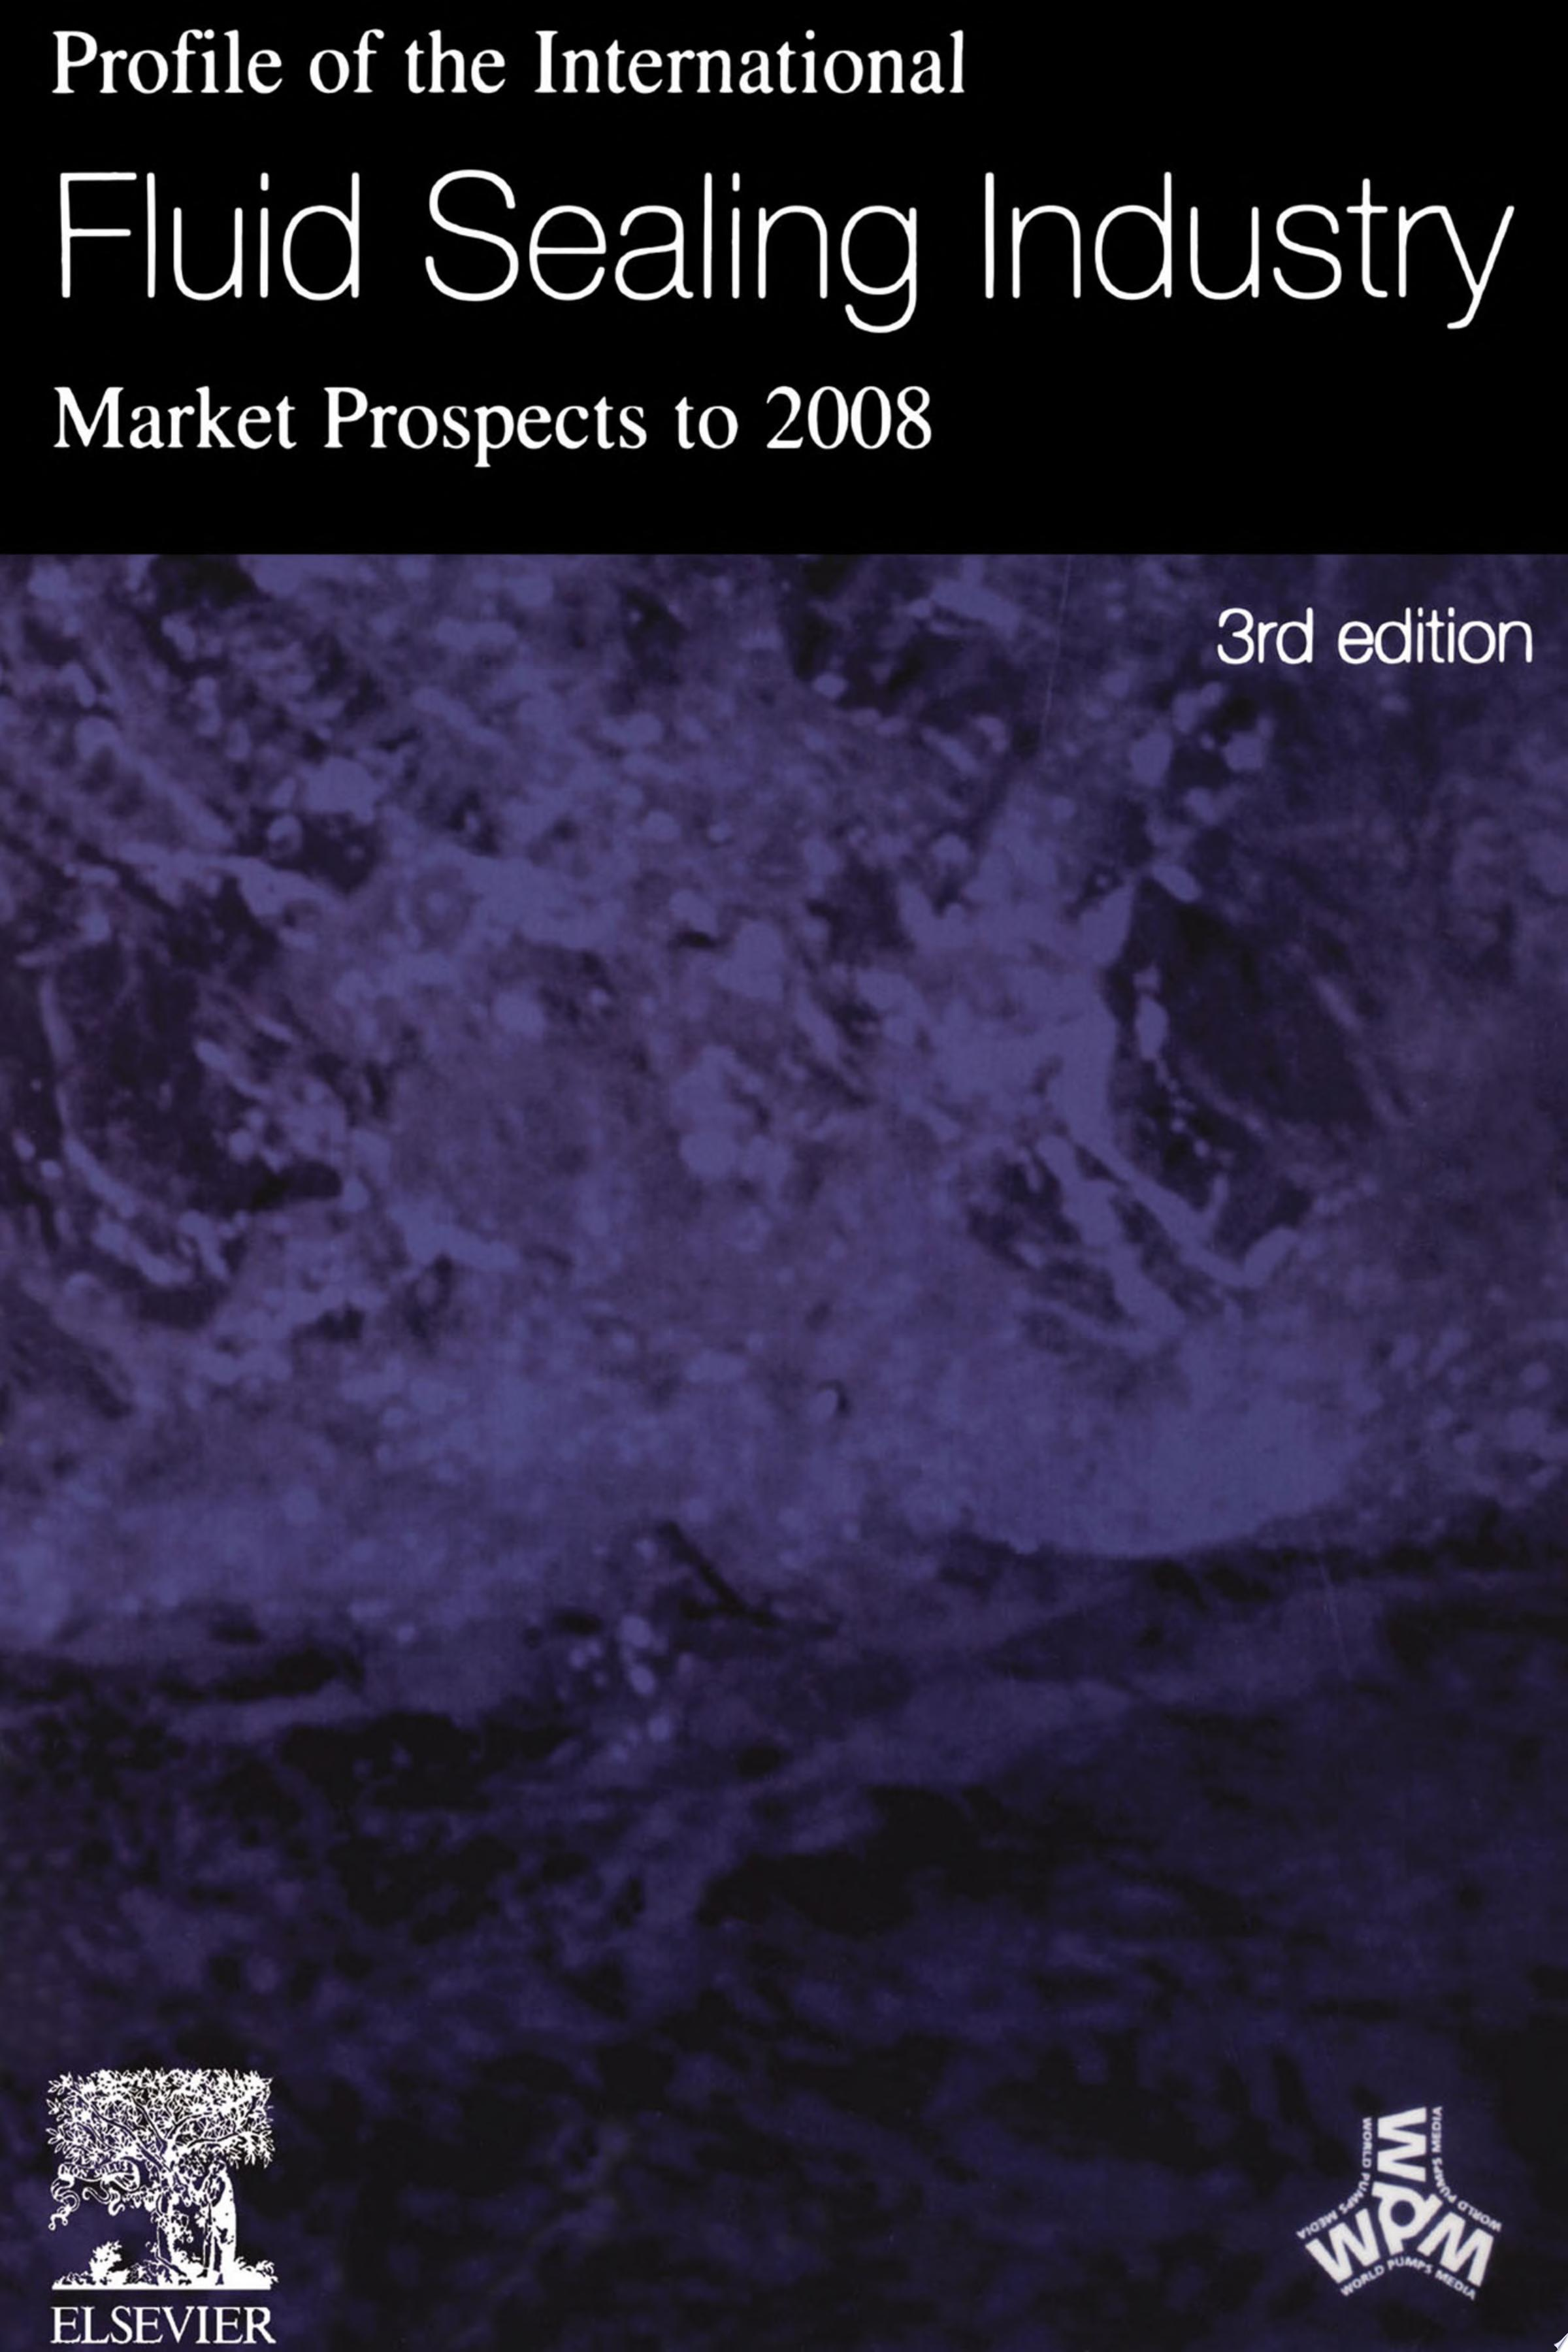 Profile of the International Fluid Sealing Industry   Market Prospects to 2008